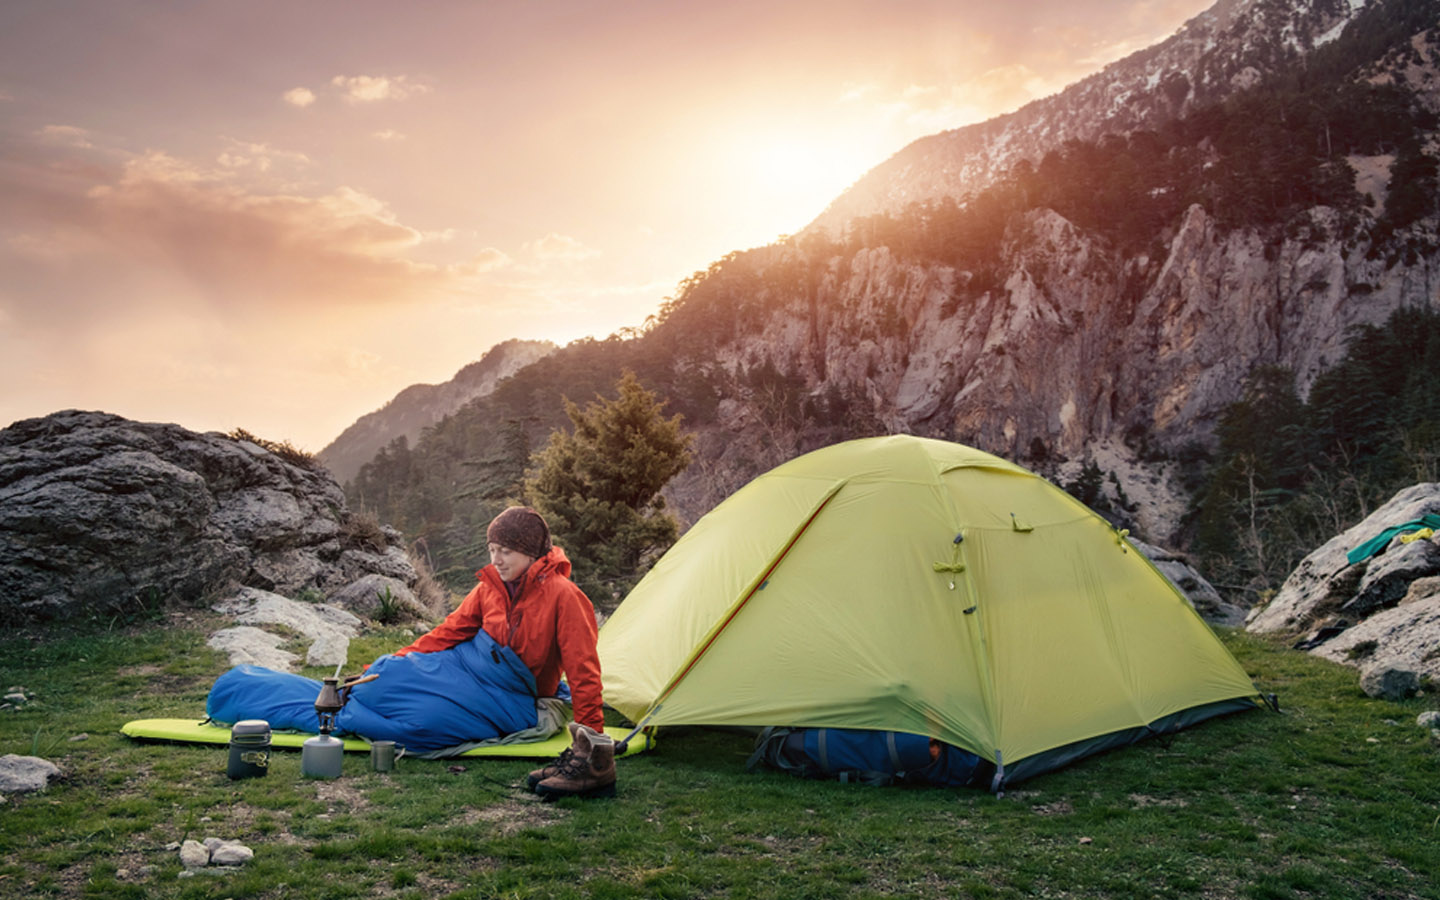 Overnight camping with lightweight sleeping bags